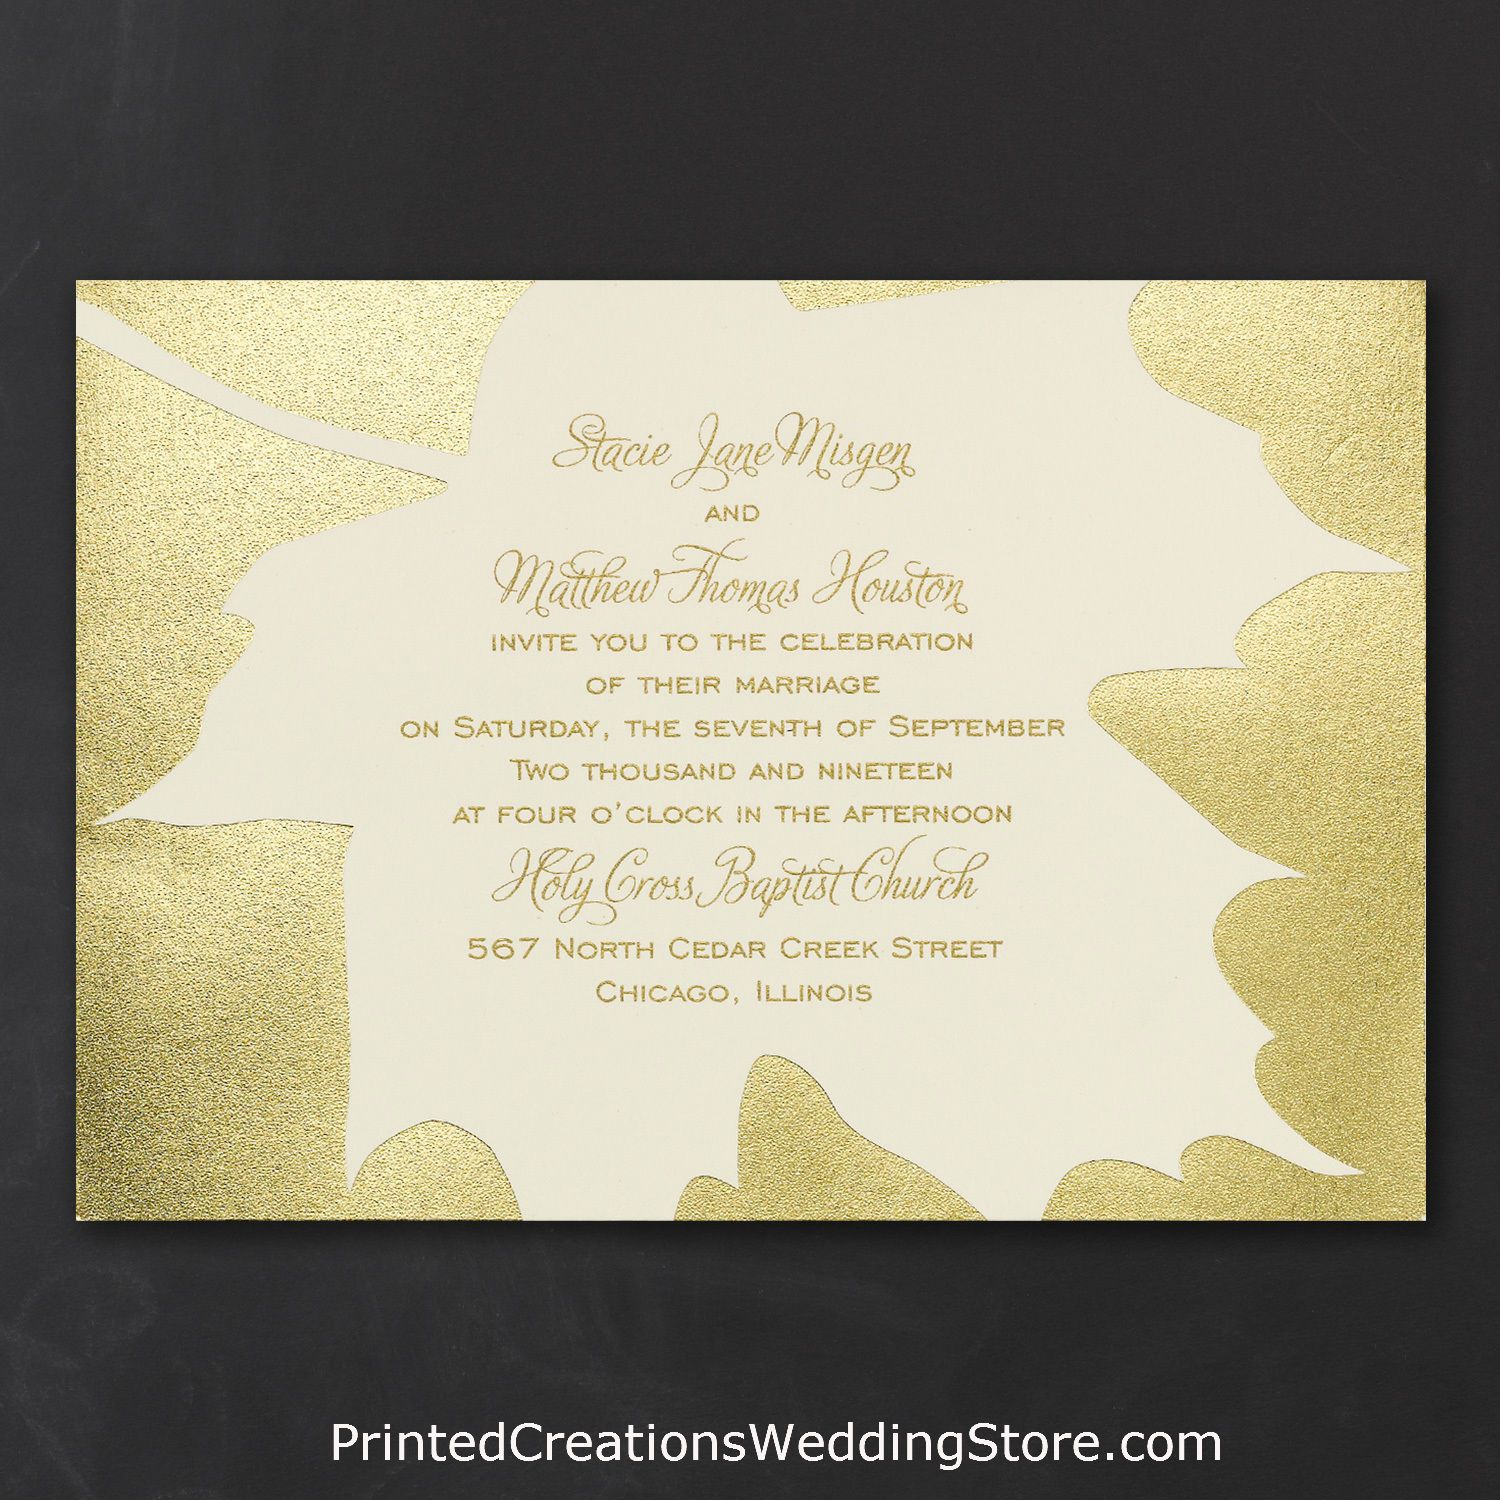 Having a fall or autumn wedding? This Golden Leaves Invitation sets ...